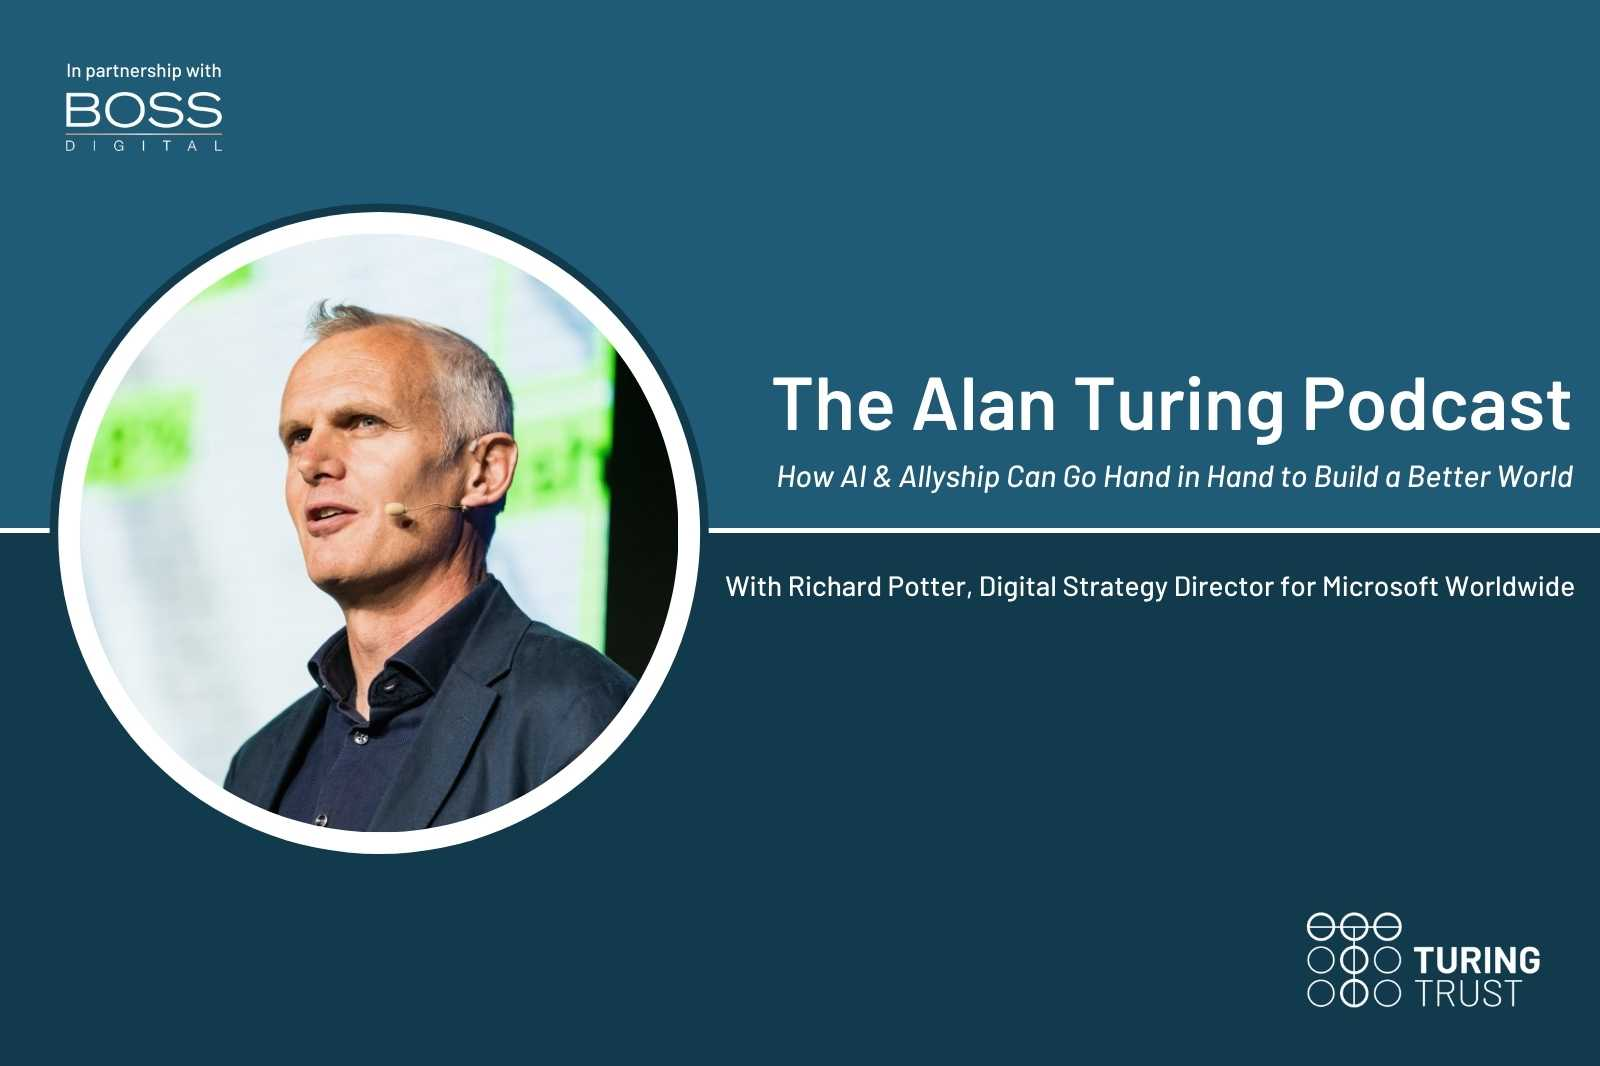 The Alan Turing Podcast: How AI & Allyship Can Go Hand in Hand to Build a Better World   With Richard Potter, Digital Strategy Director for Microsoft's Worldwide Digital Partnerships Team